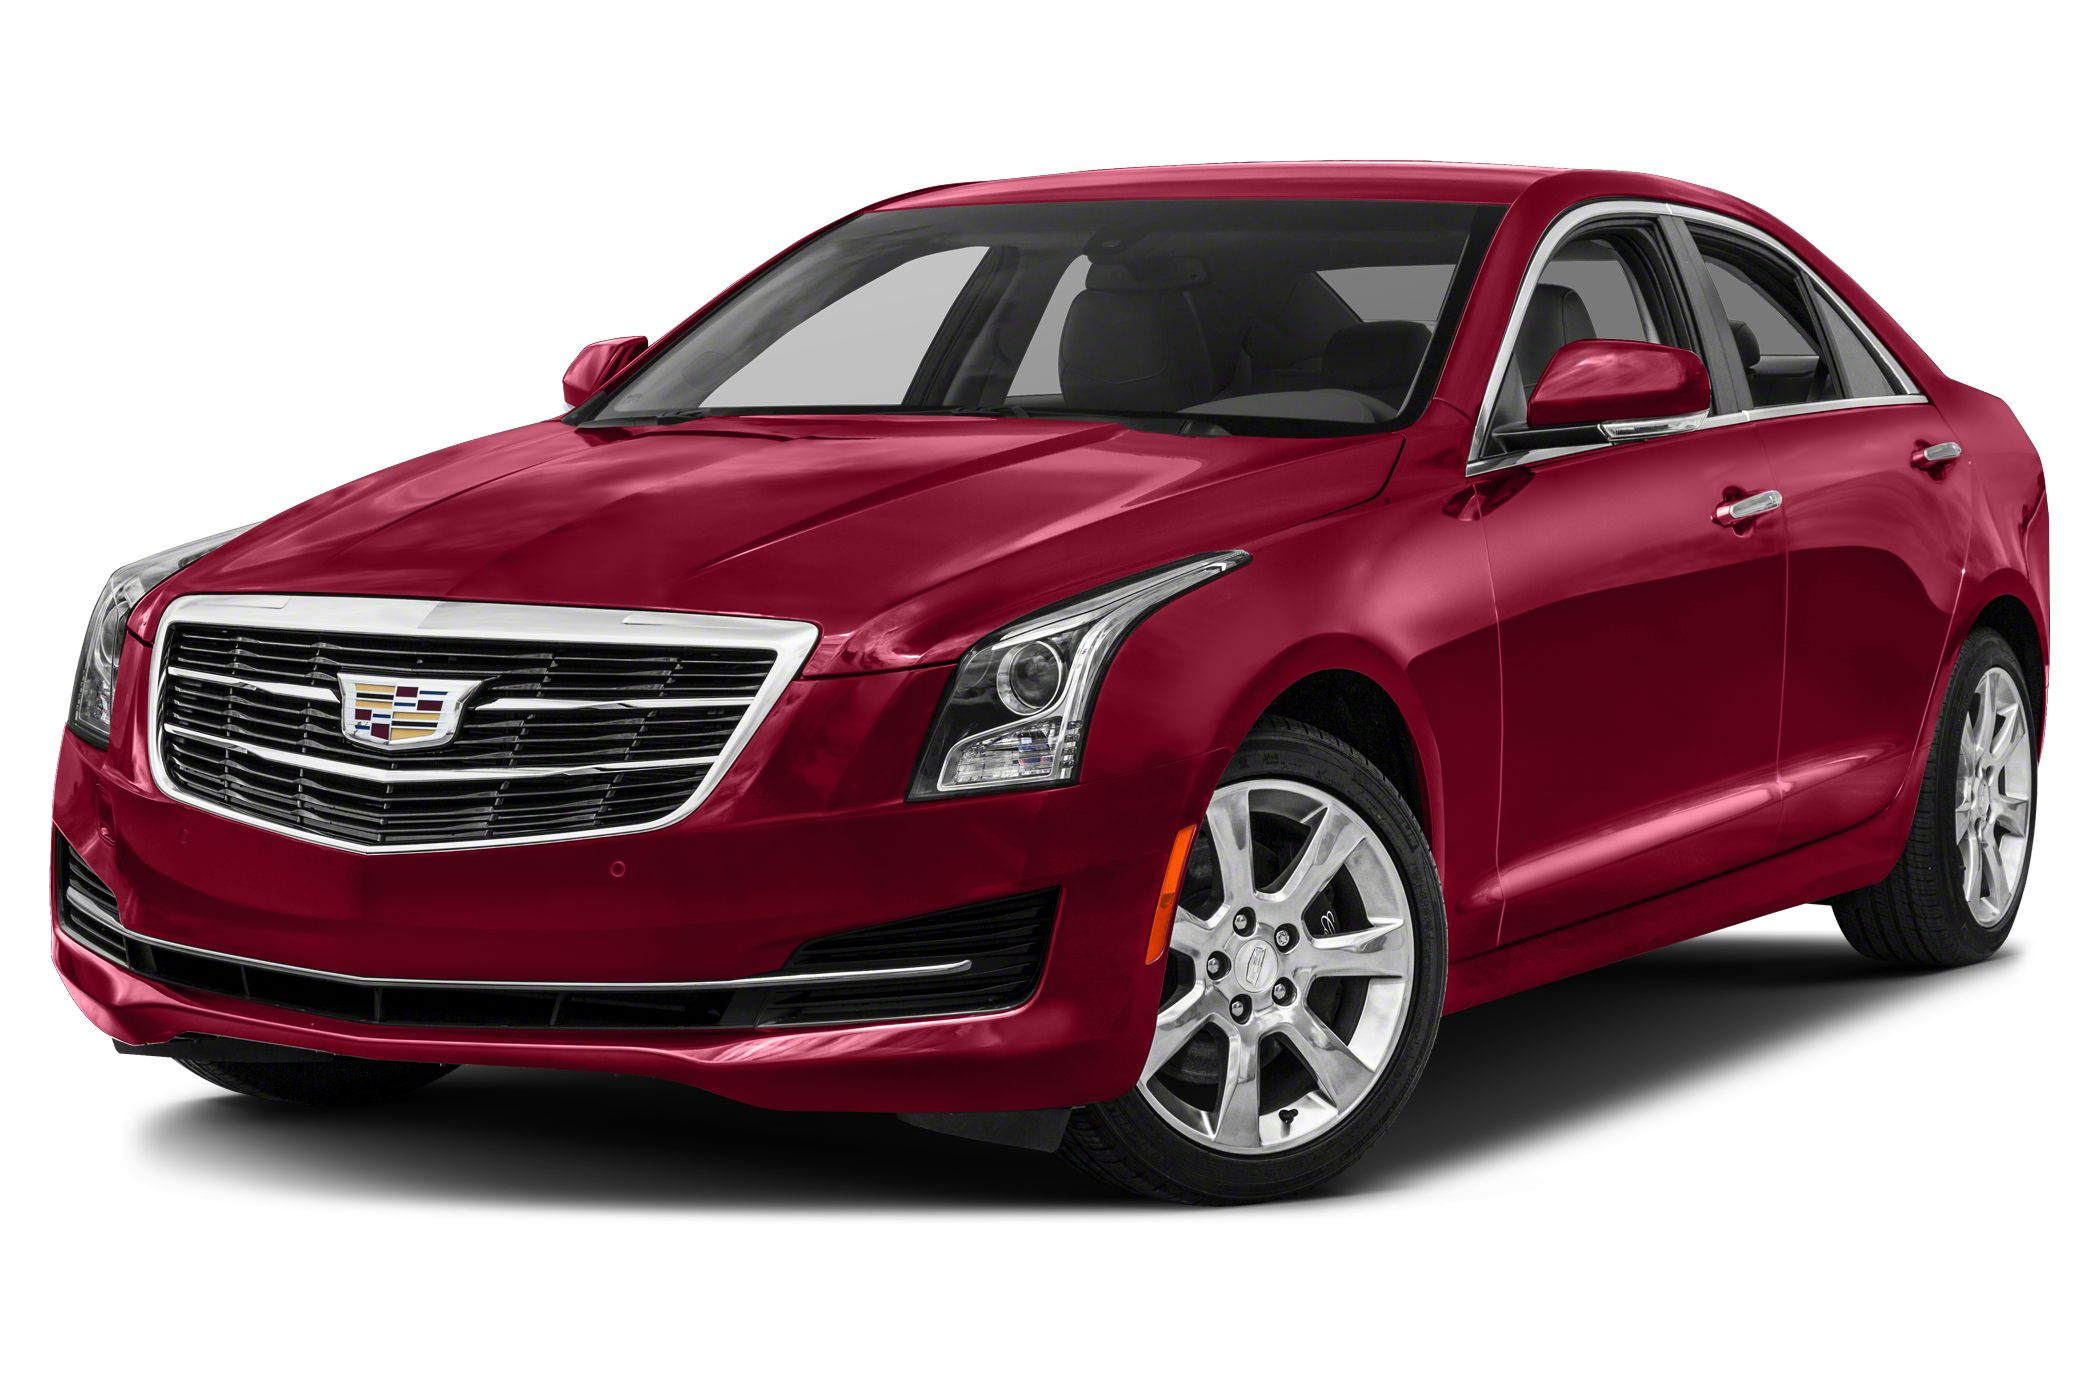 2015 Cadillac ATS 2.0L Turbo Luxury Coupe for sale in Phoenix for $49,310 with 0 miles